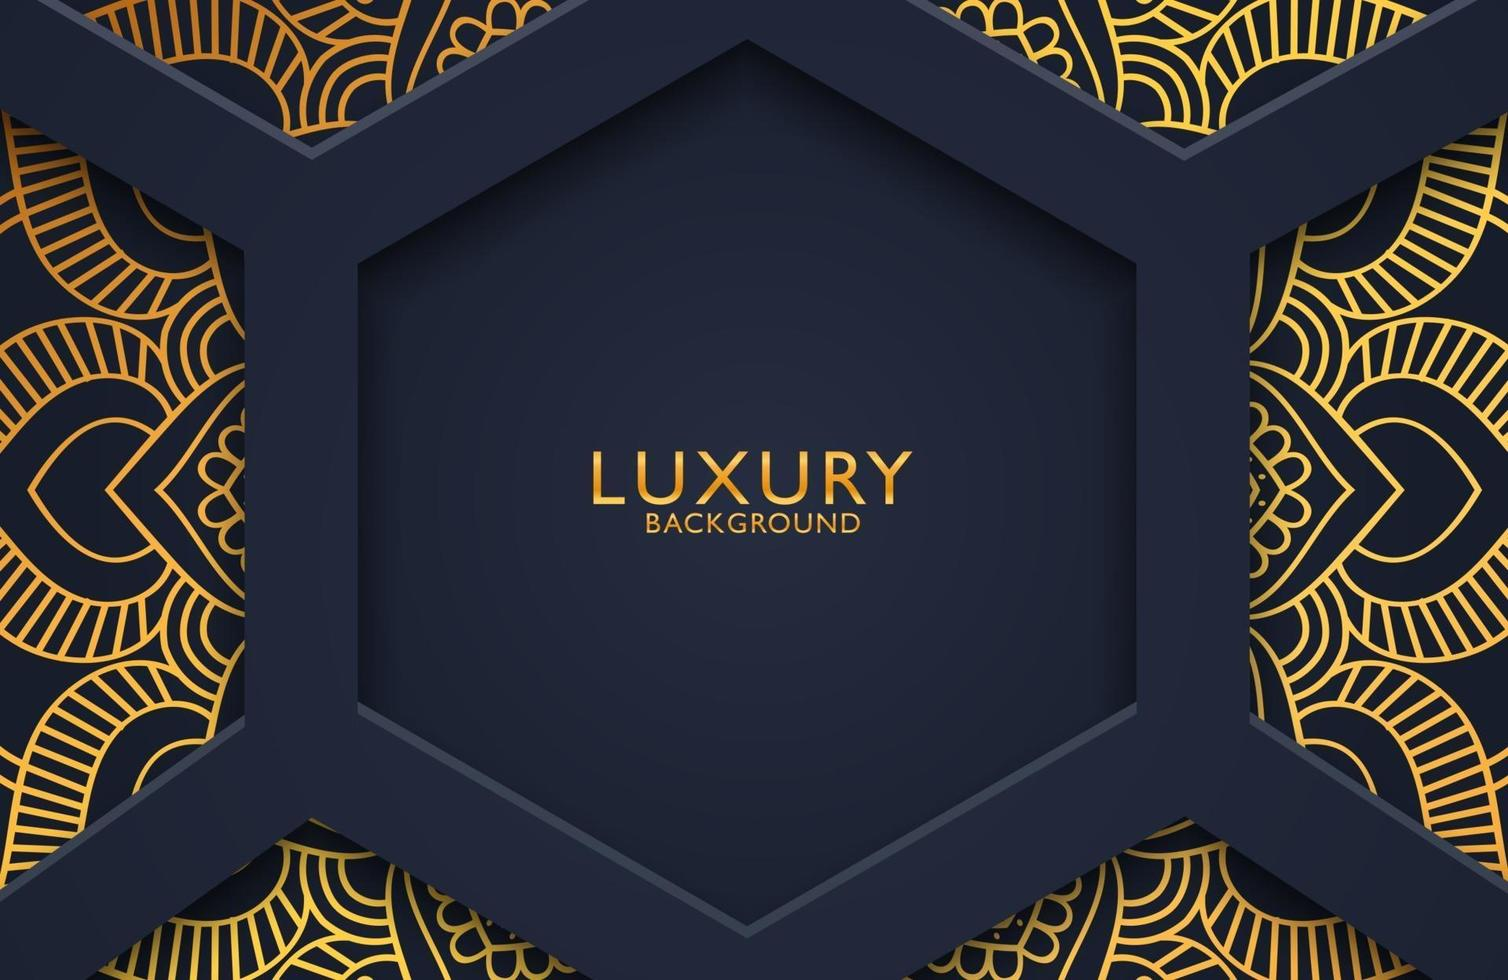 Luxury 3d background with gold mandala ornate for wedding invitation, book cover. Arabesque islamic background vector